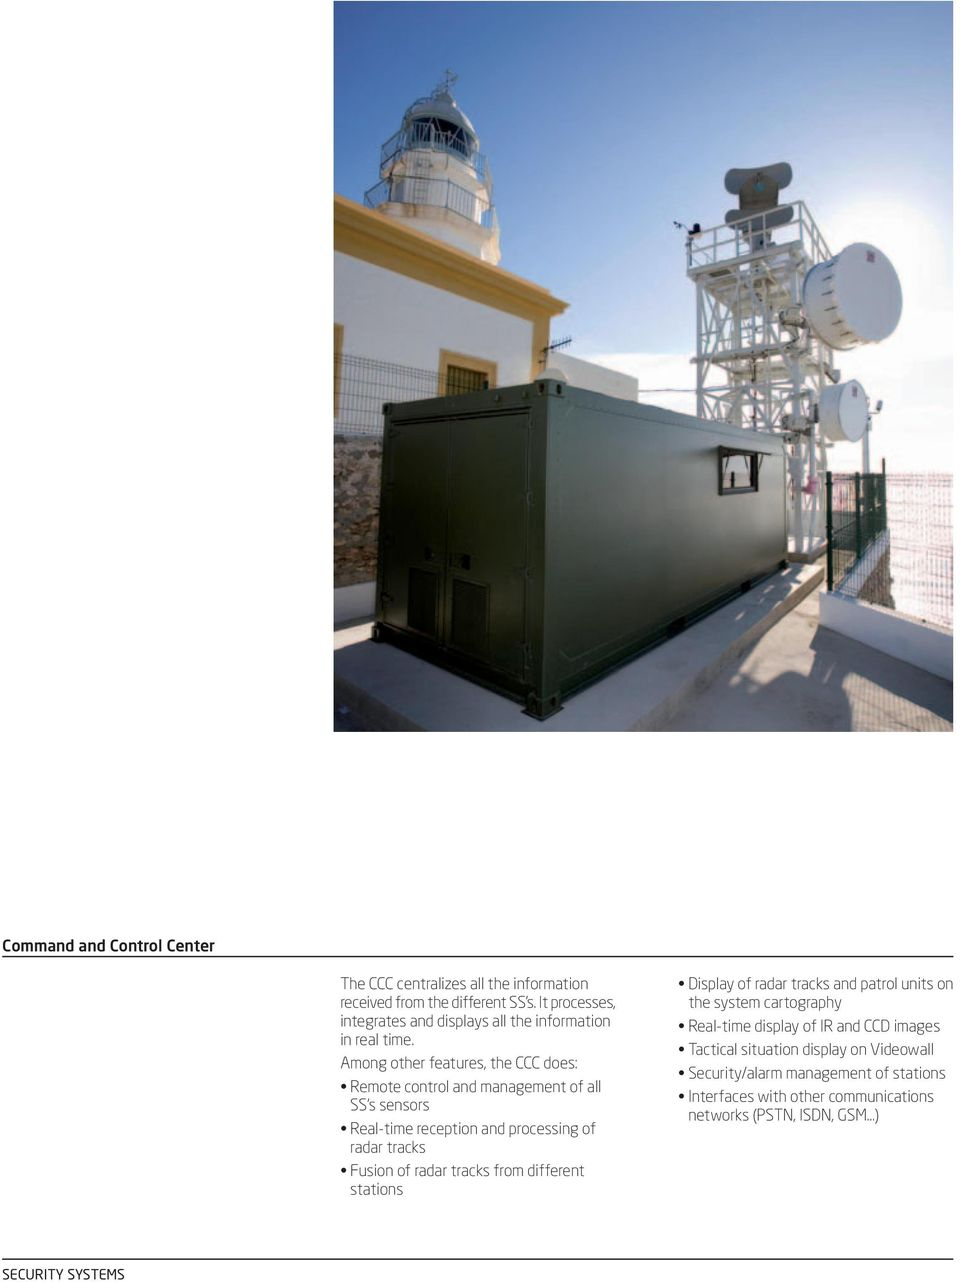 Among other features, the CCC does: Remote control and management of all SS's sensors Real-time reception and processing of radar tracks Fusion of